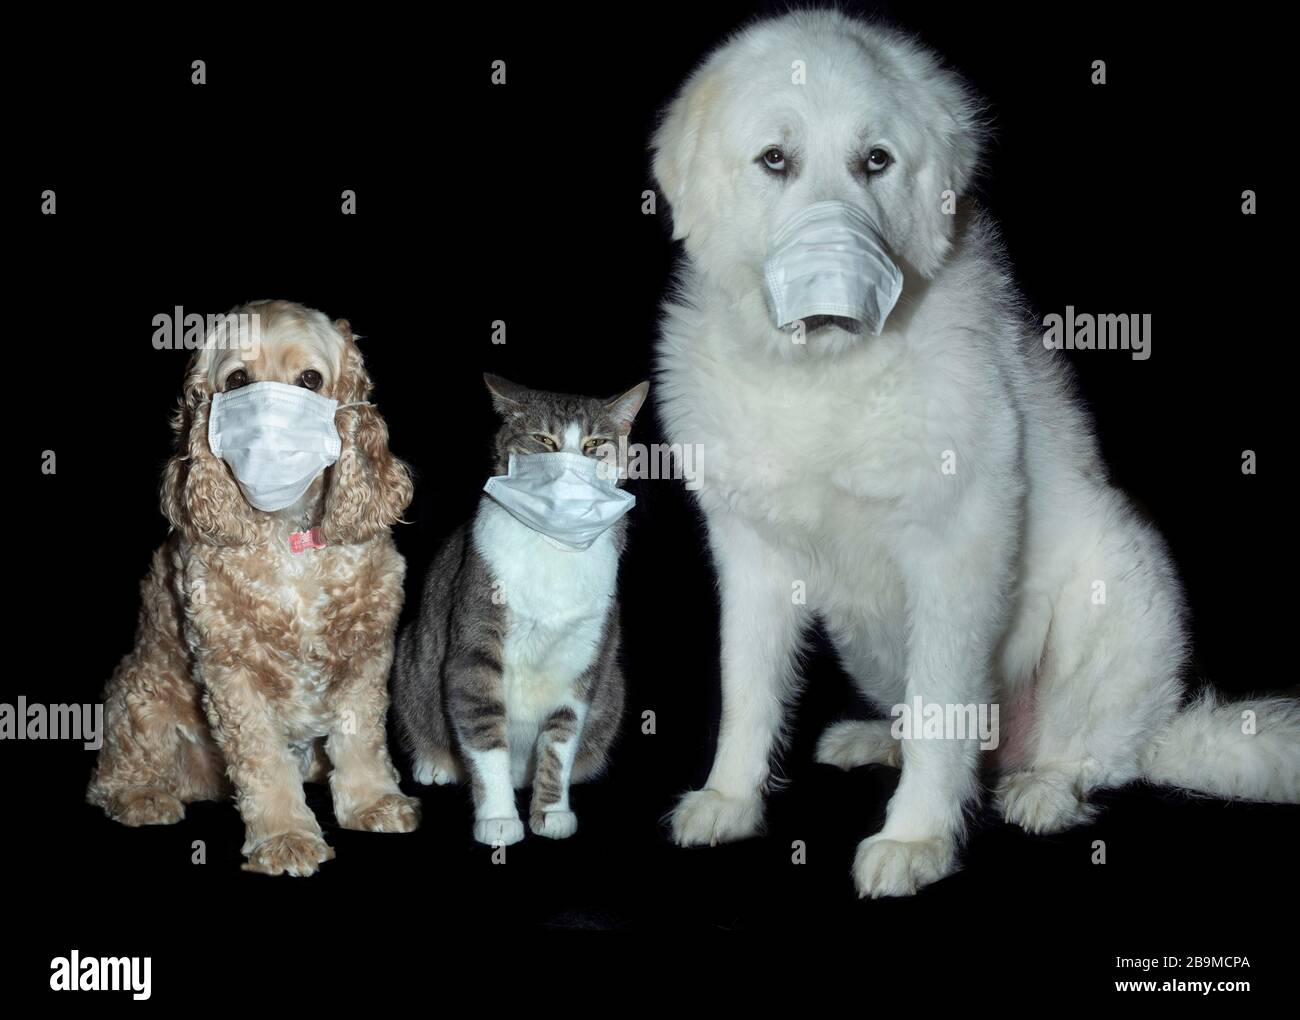 Great Pyrenees Cocker Spaniel American Shorthair Cat High Resolution Stock Photography And Images Alamy